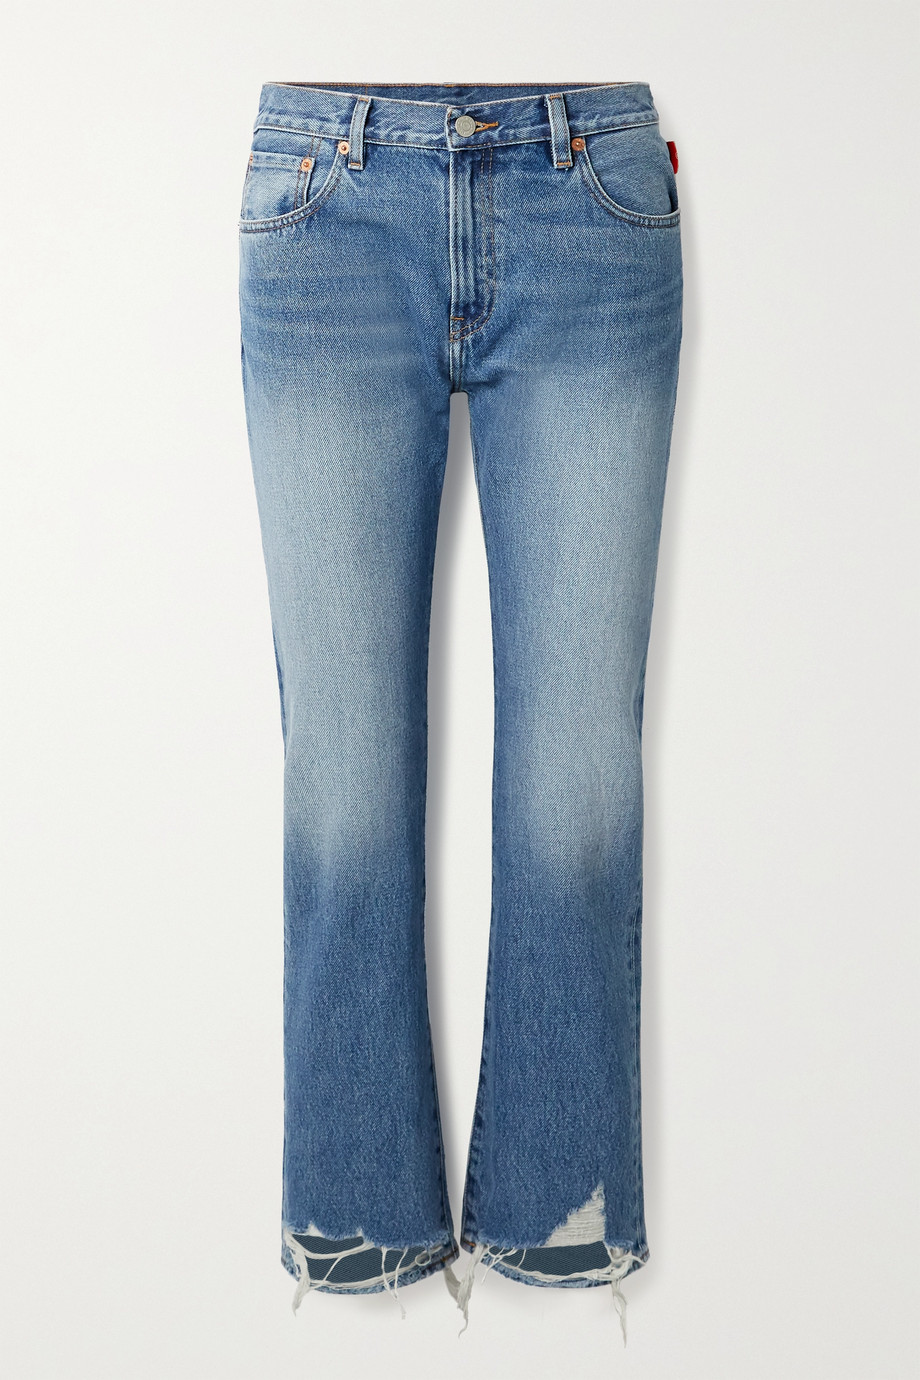 DENIMIST Joni cropped distressed mid-rise slim-leg jeans